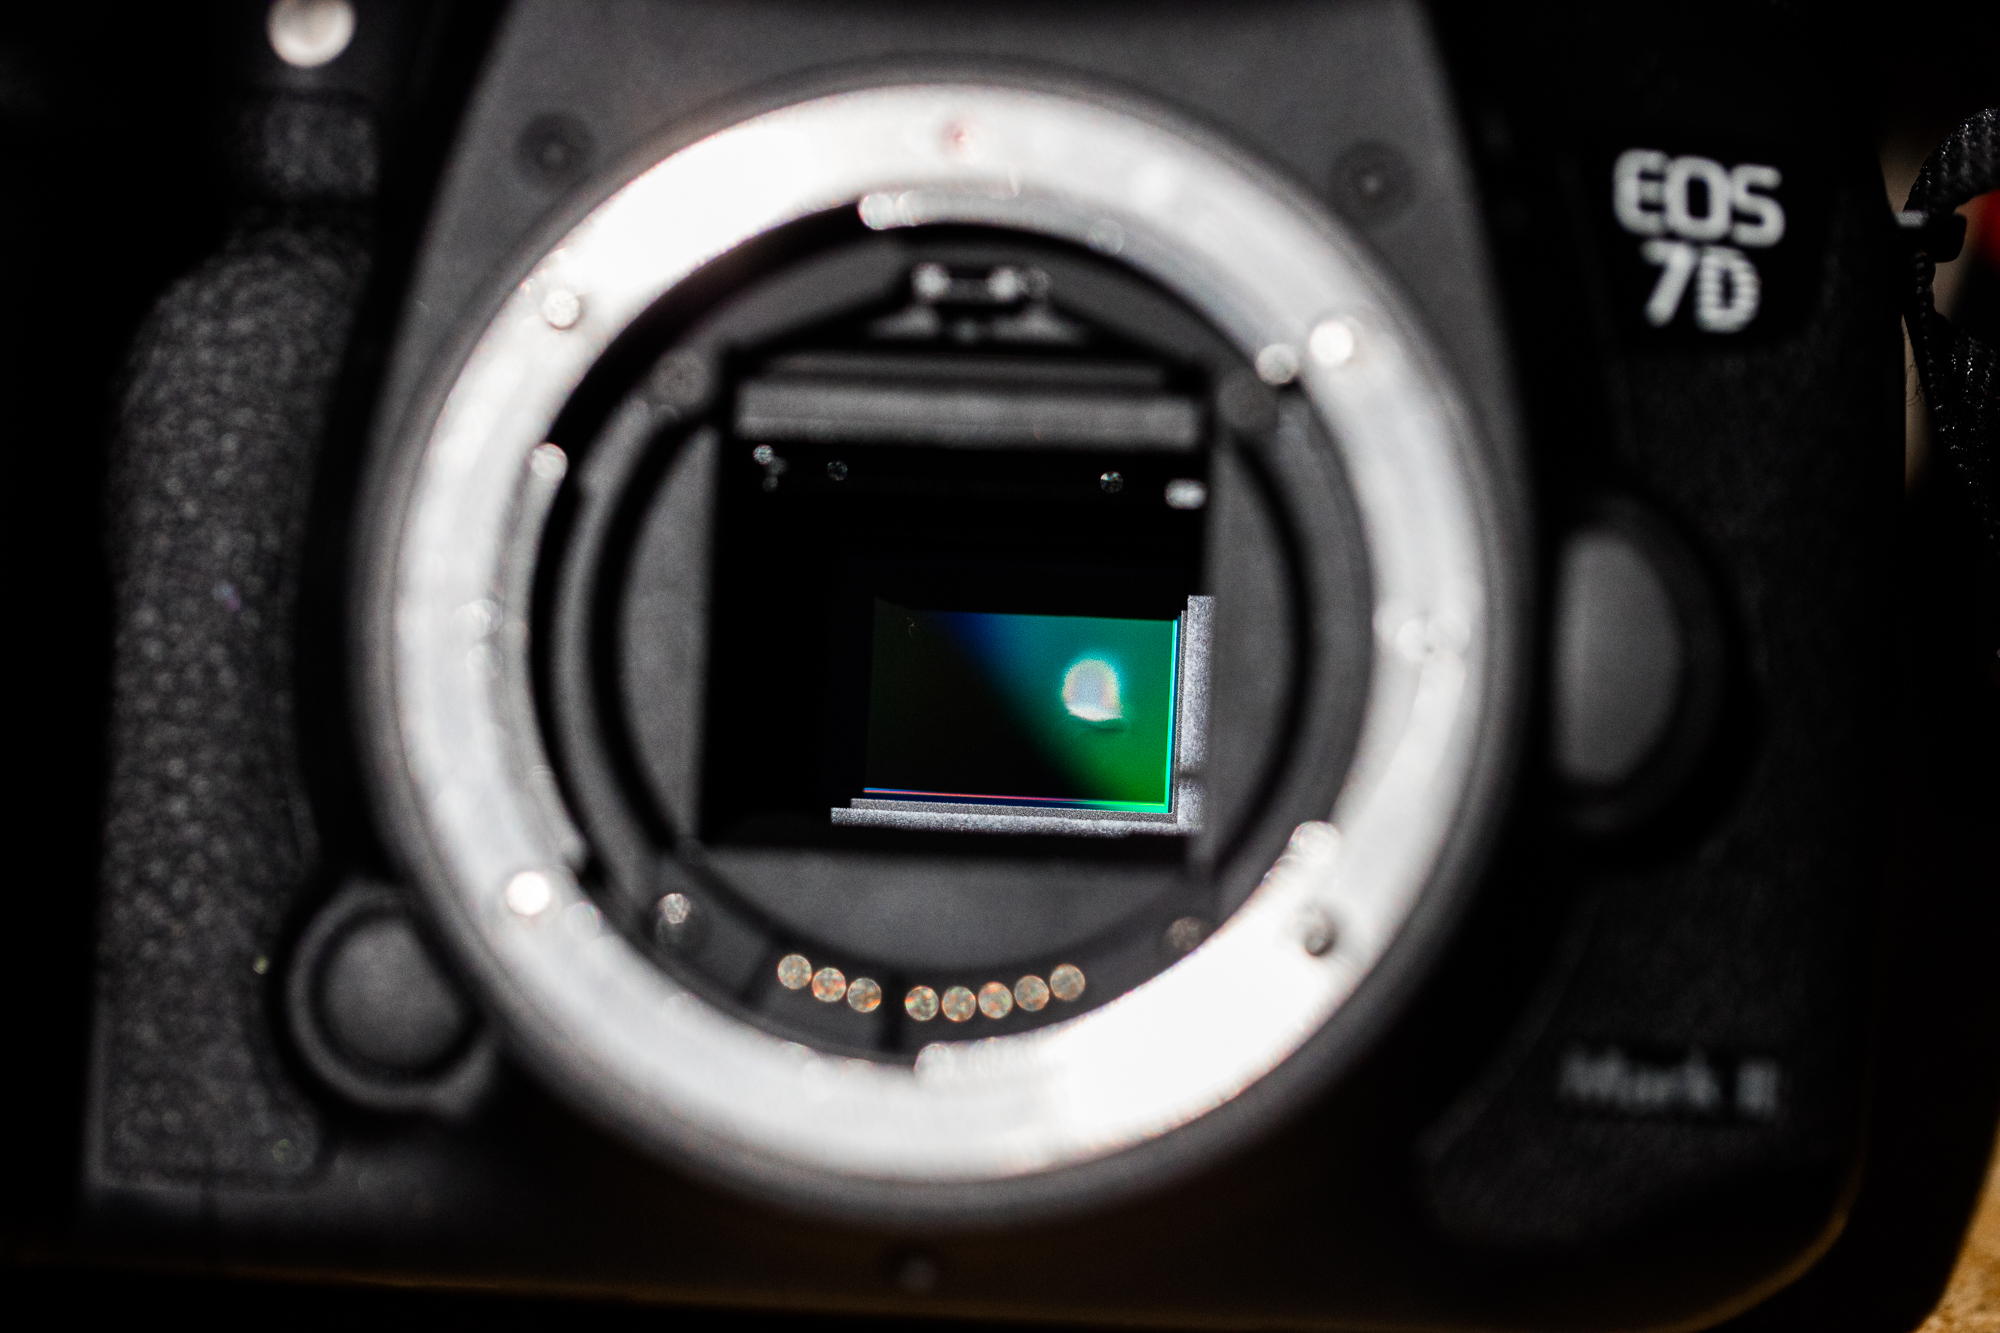 Eclipse camera lens damage